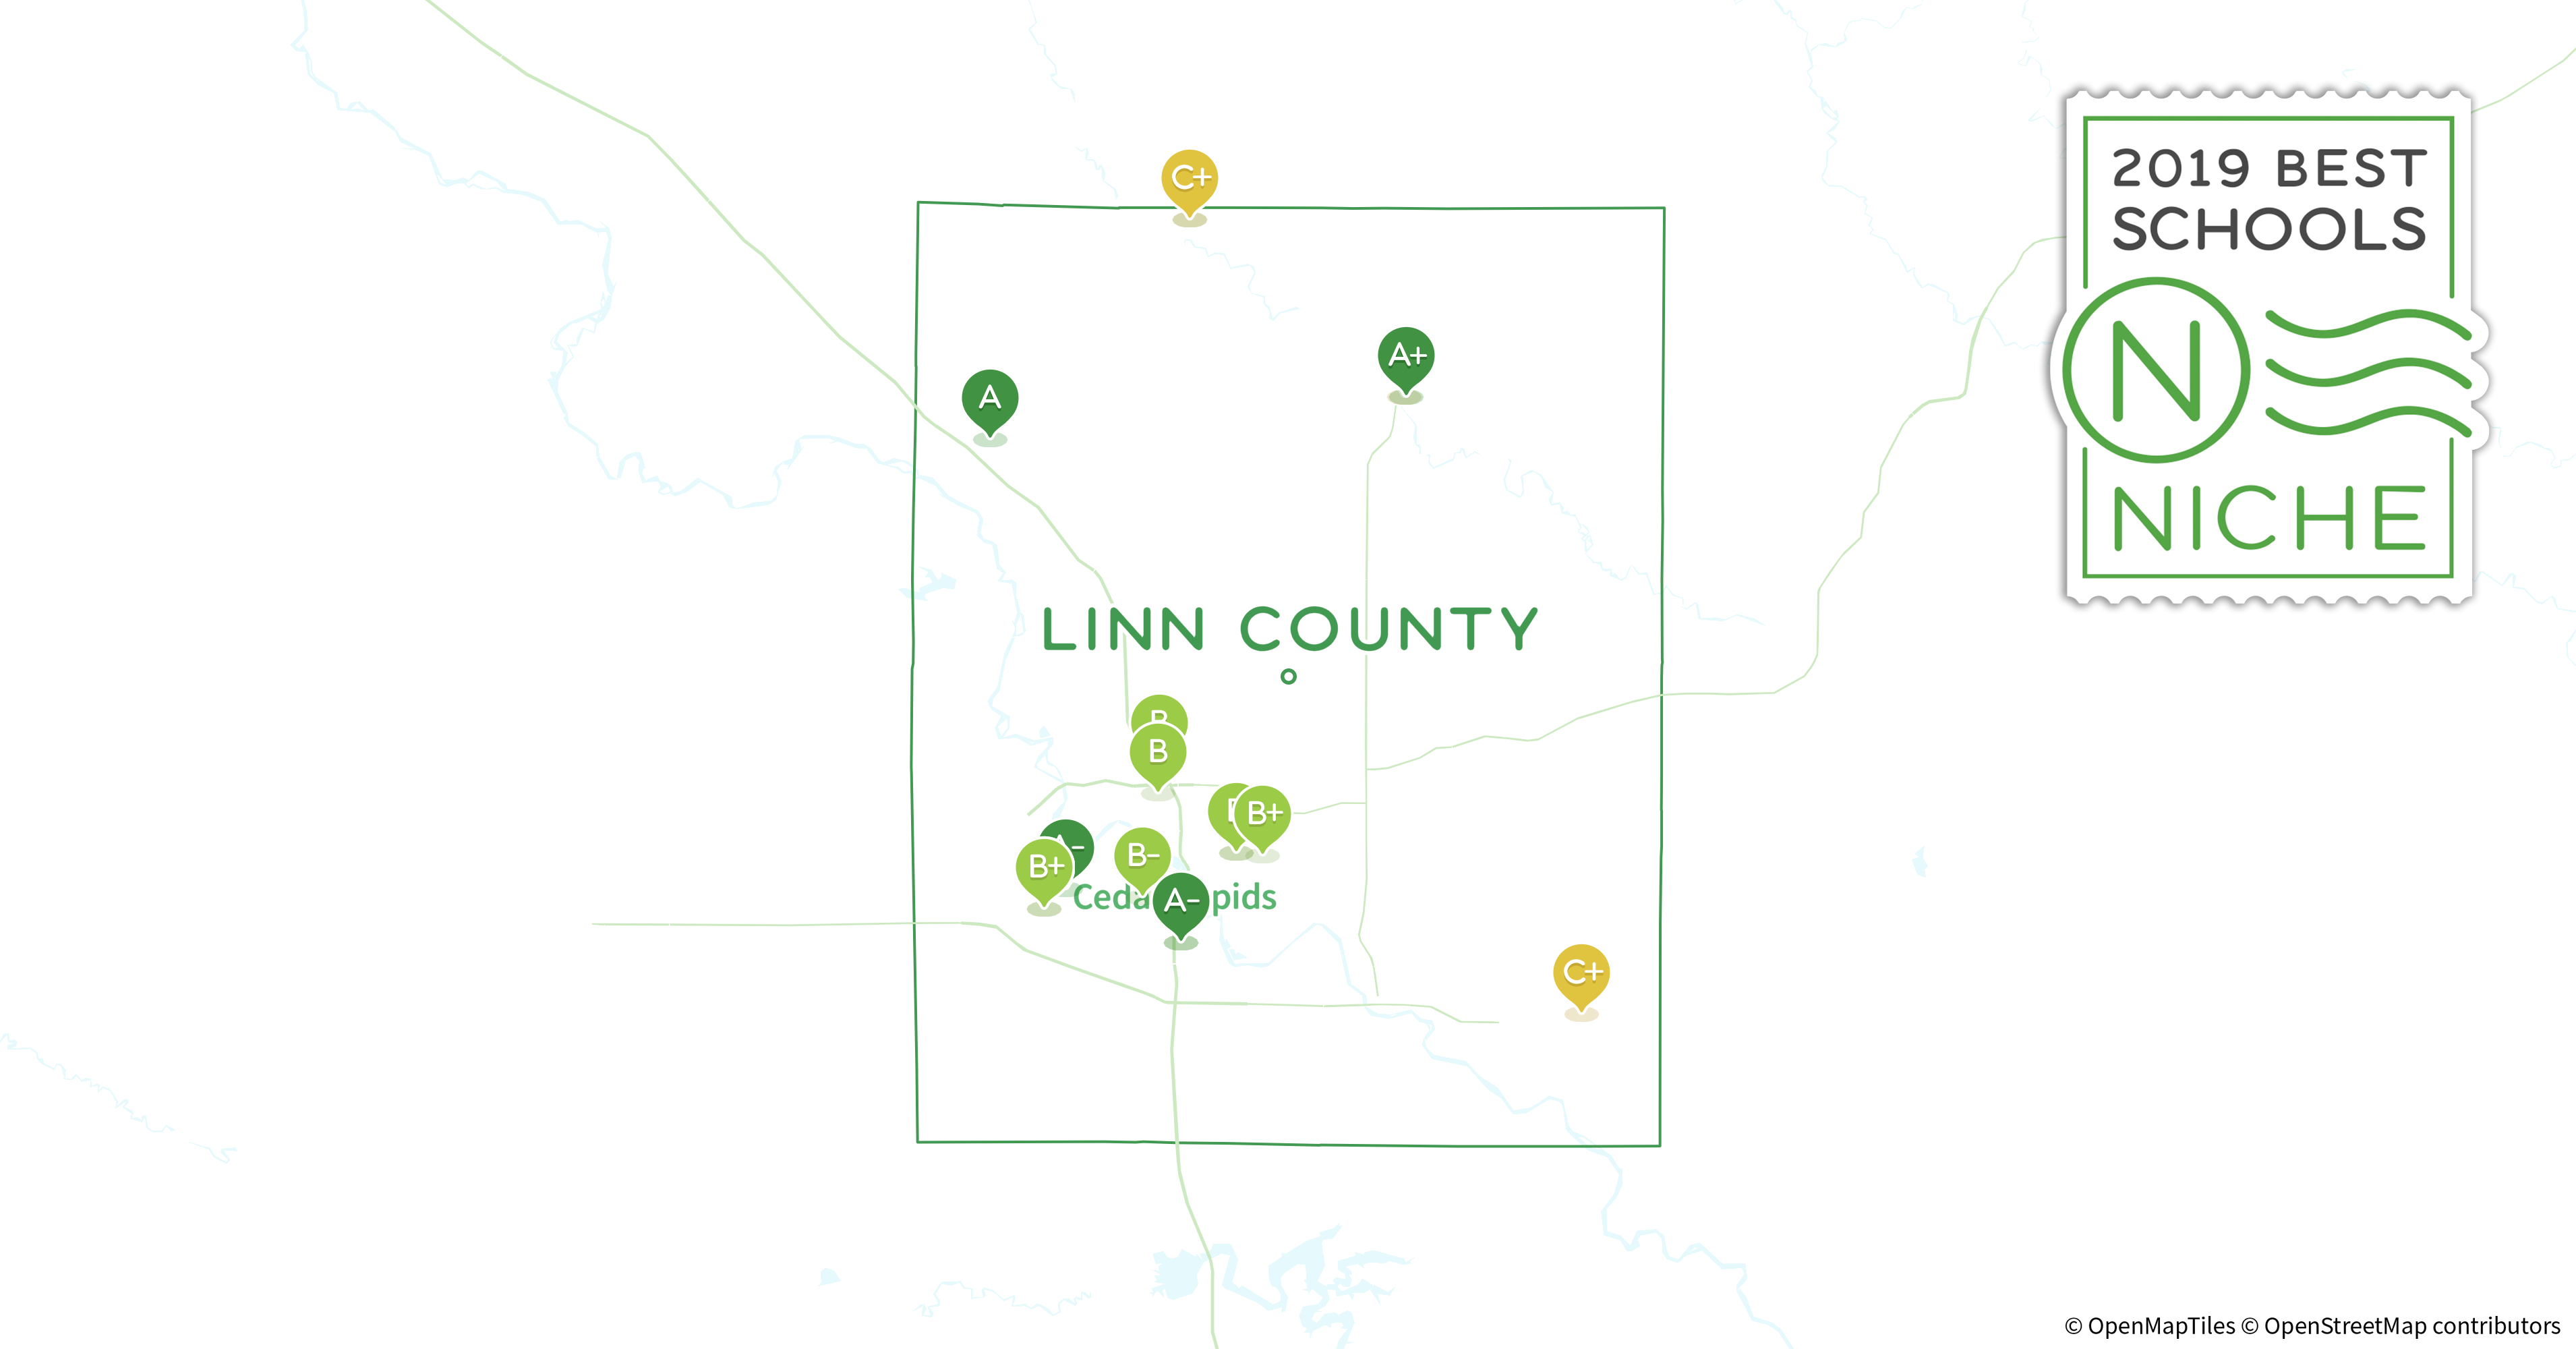 School Districts In Linn County Ia Niche